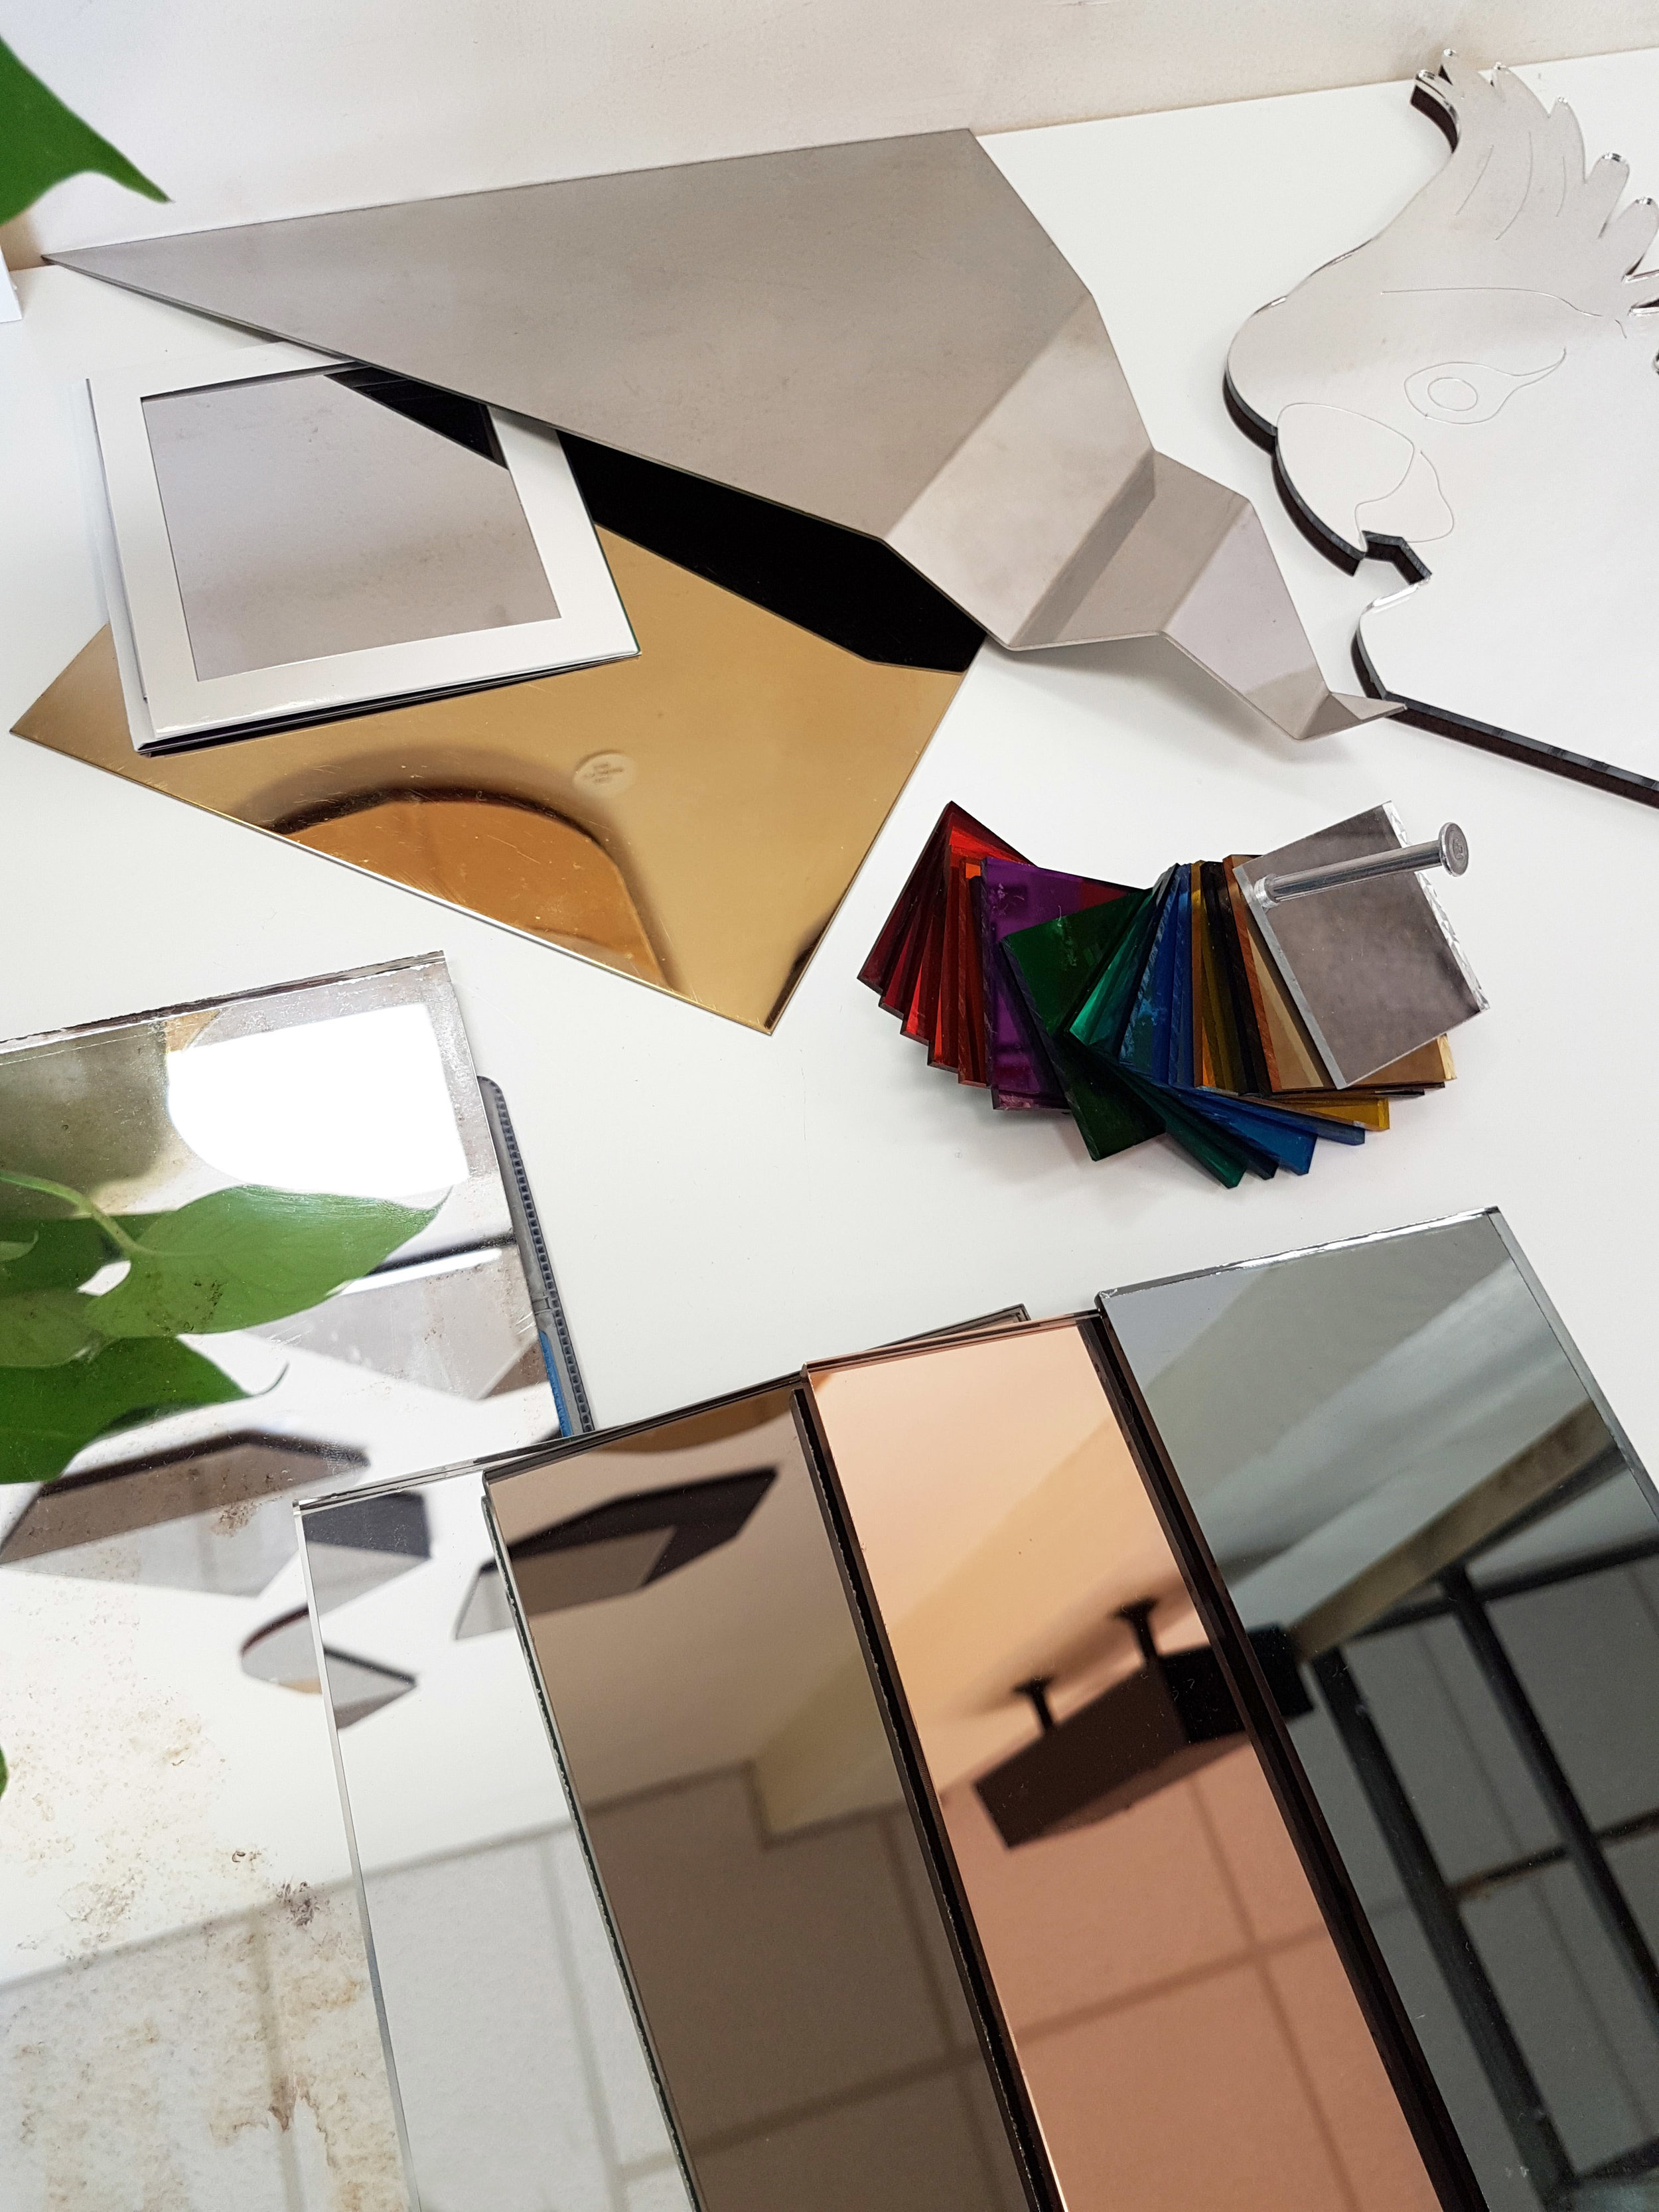 DELICIOUS MATERIAL SAMPLES - Material samples to choose from for glass, metal or acrylic mirrors. We specialise in precision folding, laser cutting and bespoke hand made glass mirrors.